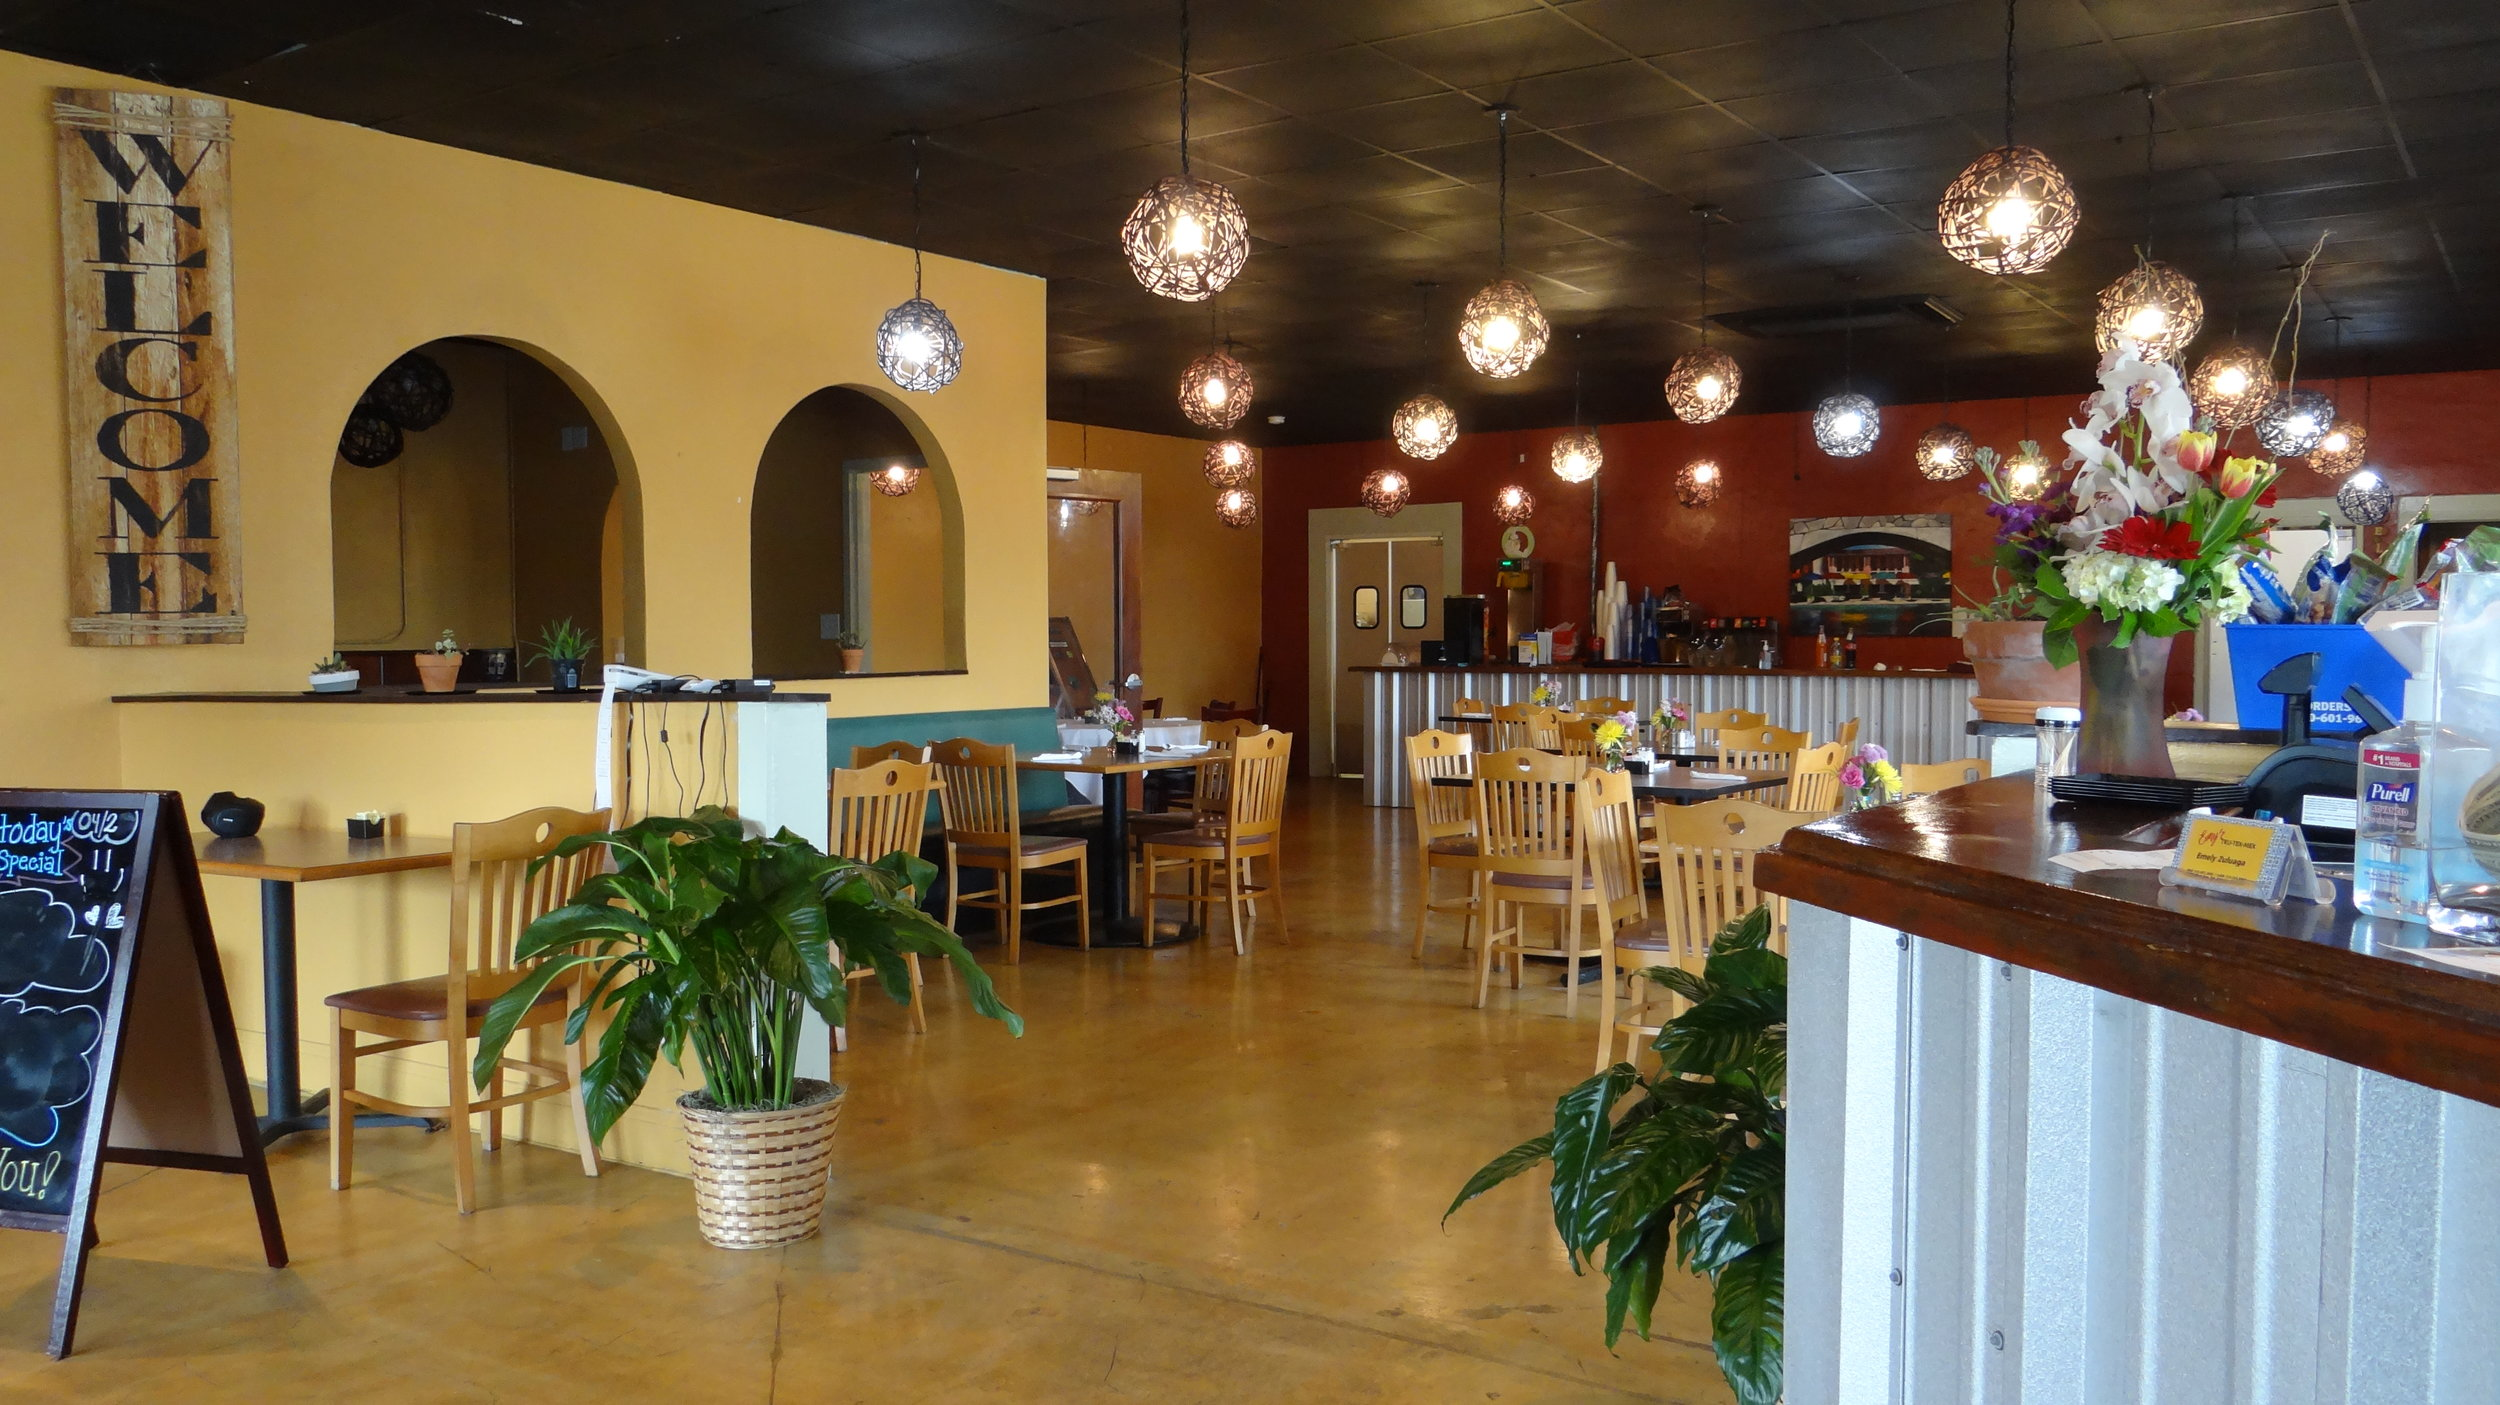 AVAILABLE NOW: PREMIUM RESTAURANT SPACE WITHIN PARK NORTH SHOPPING CENTER